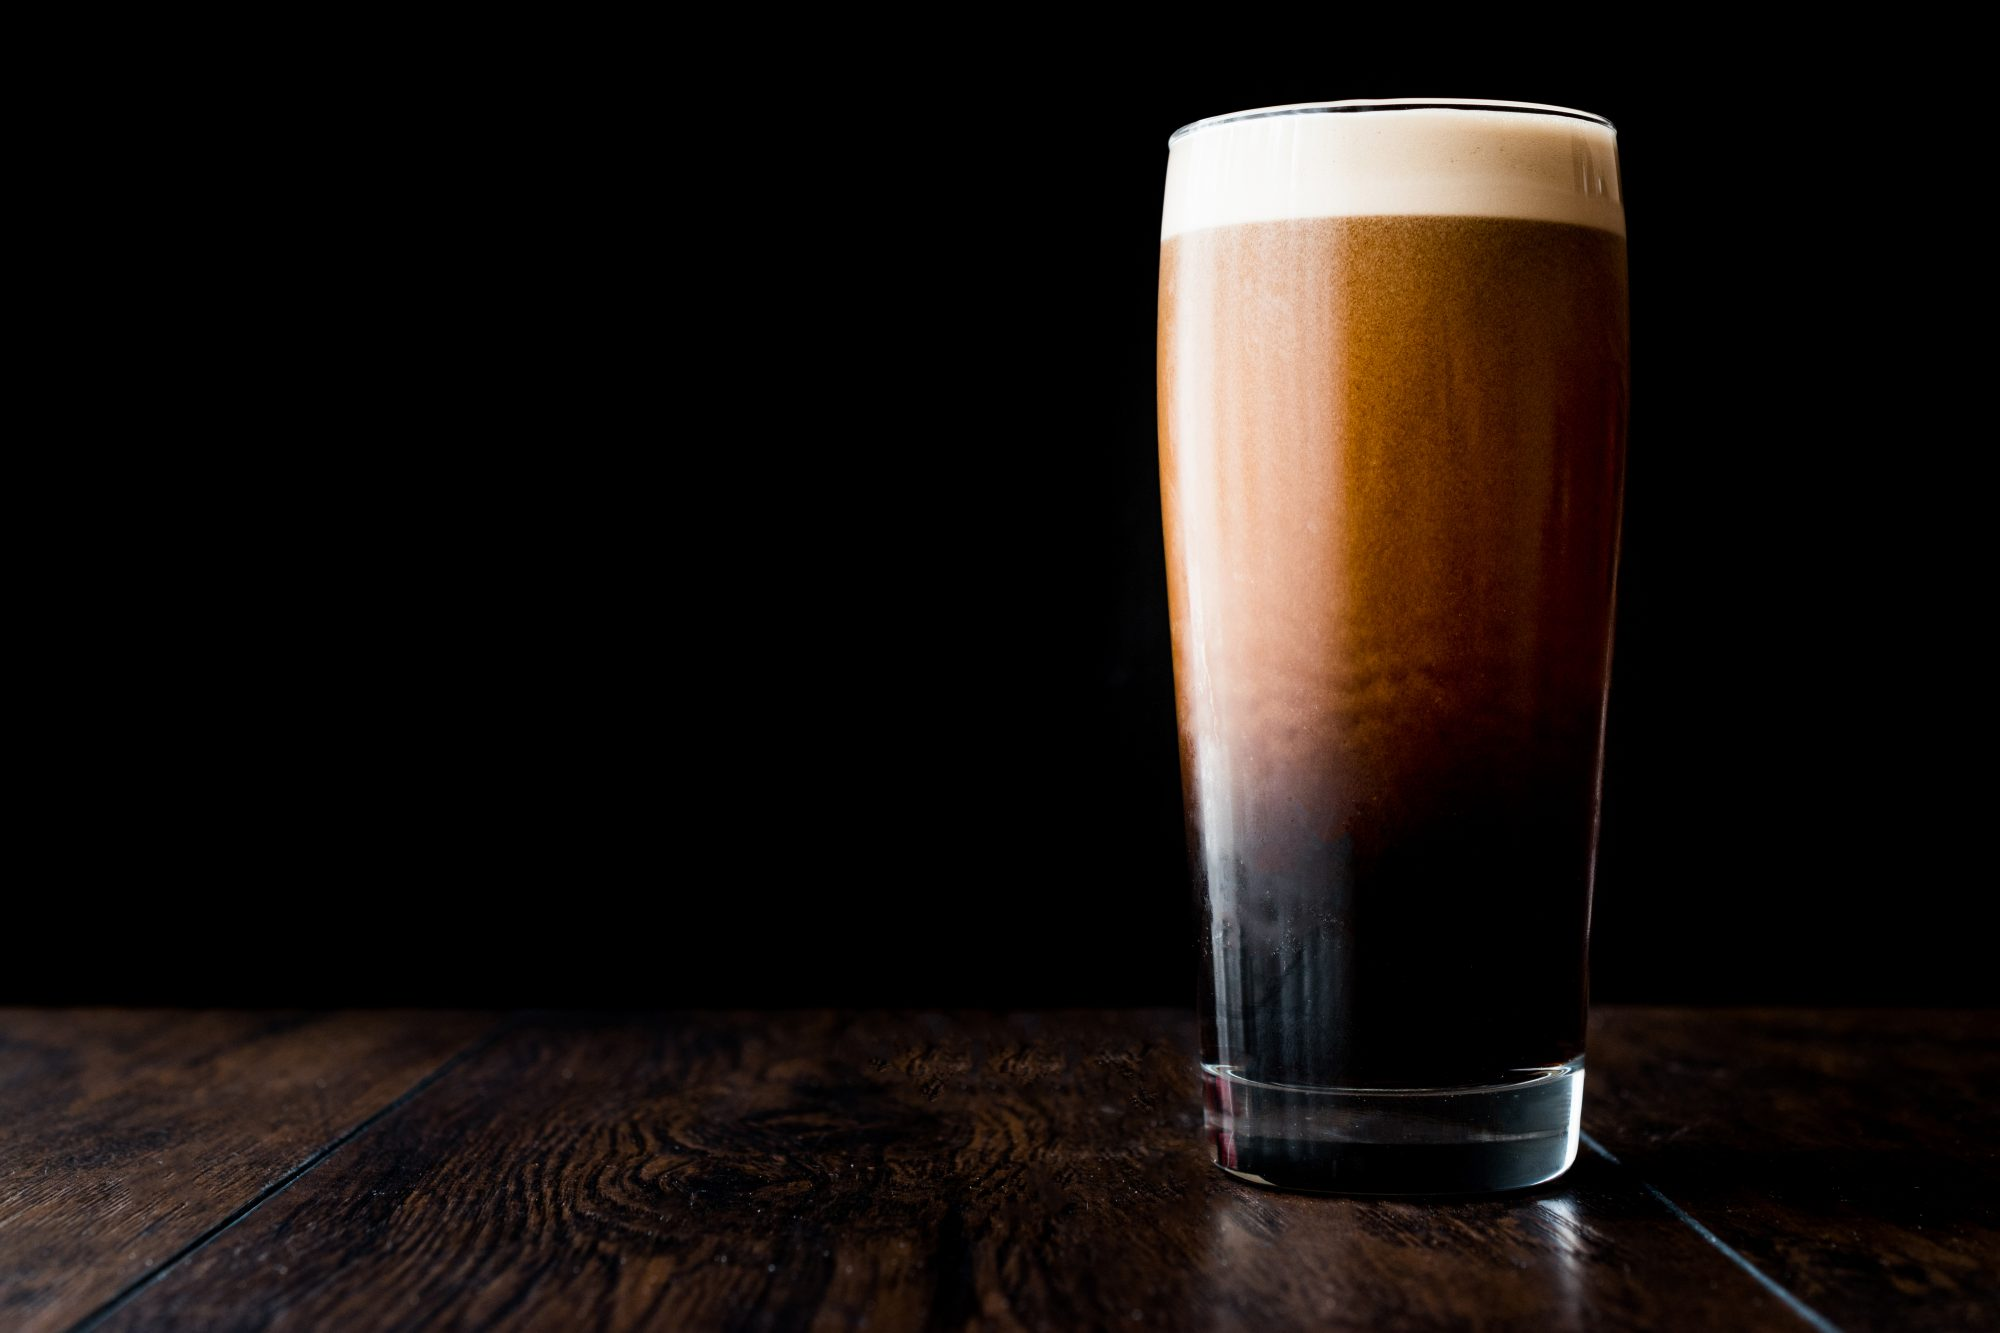 Why Do Some Beer Bubbles Appear to Defy Physics?